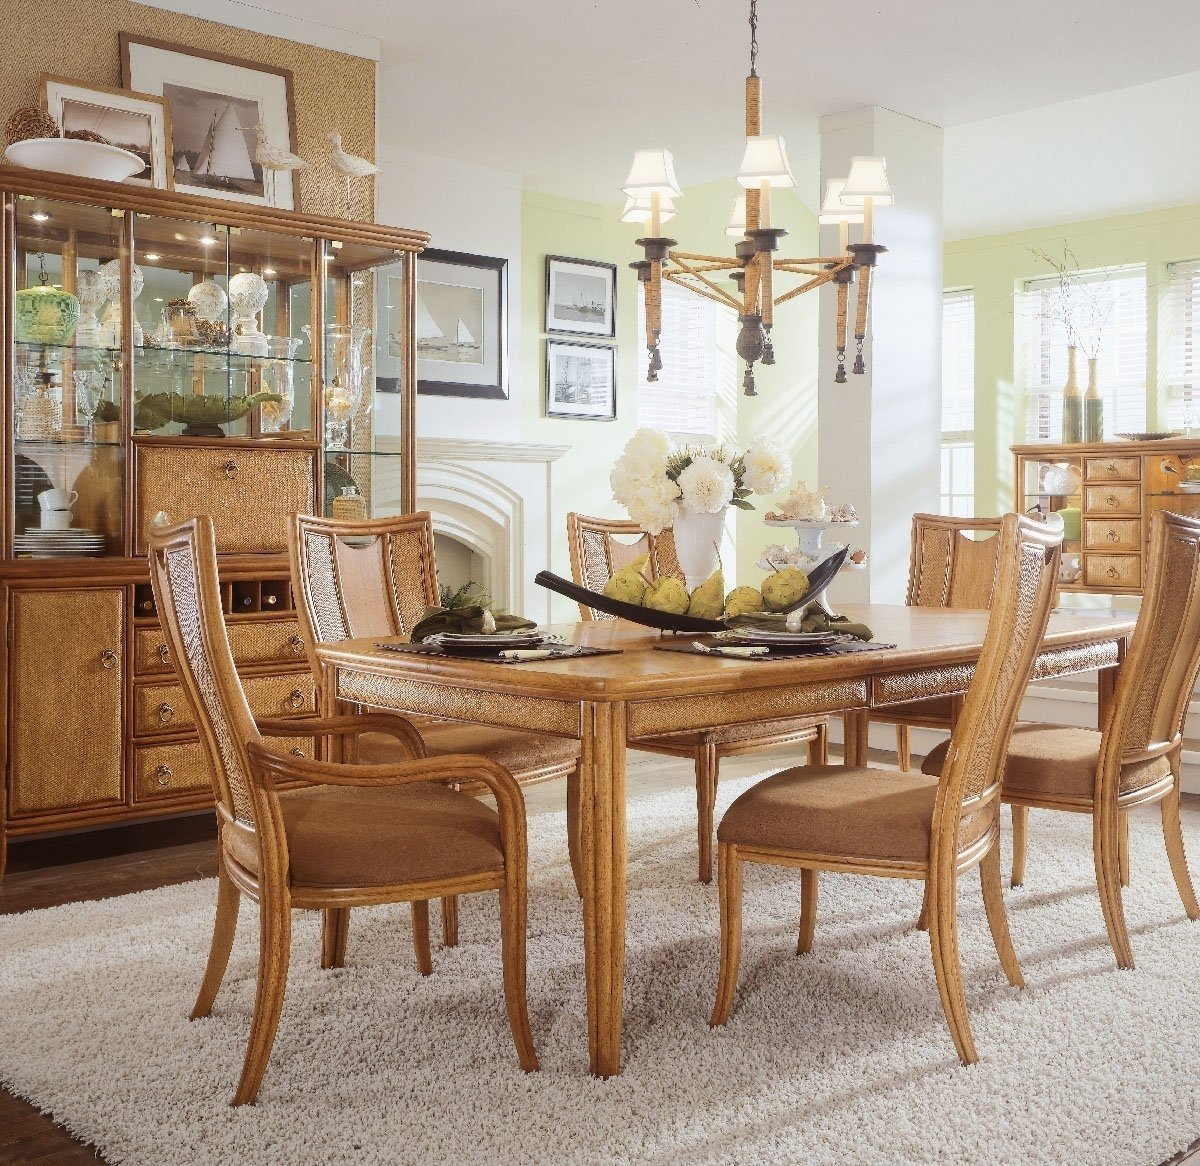 10 Pretty Dining Room Table Centerpieces Ideas dining room gorgeous wooden dining table centerpieces for dining 2020